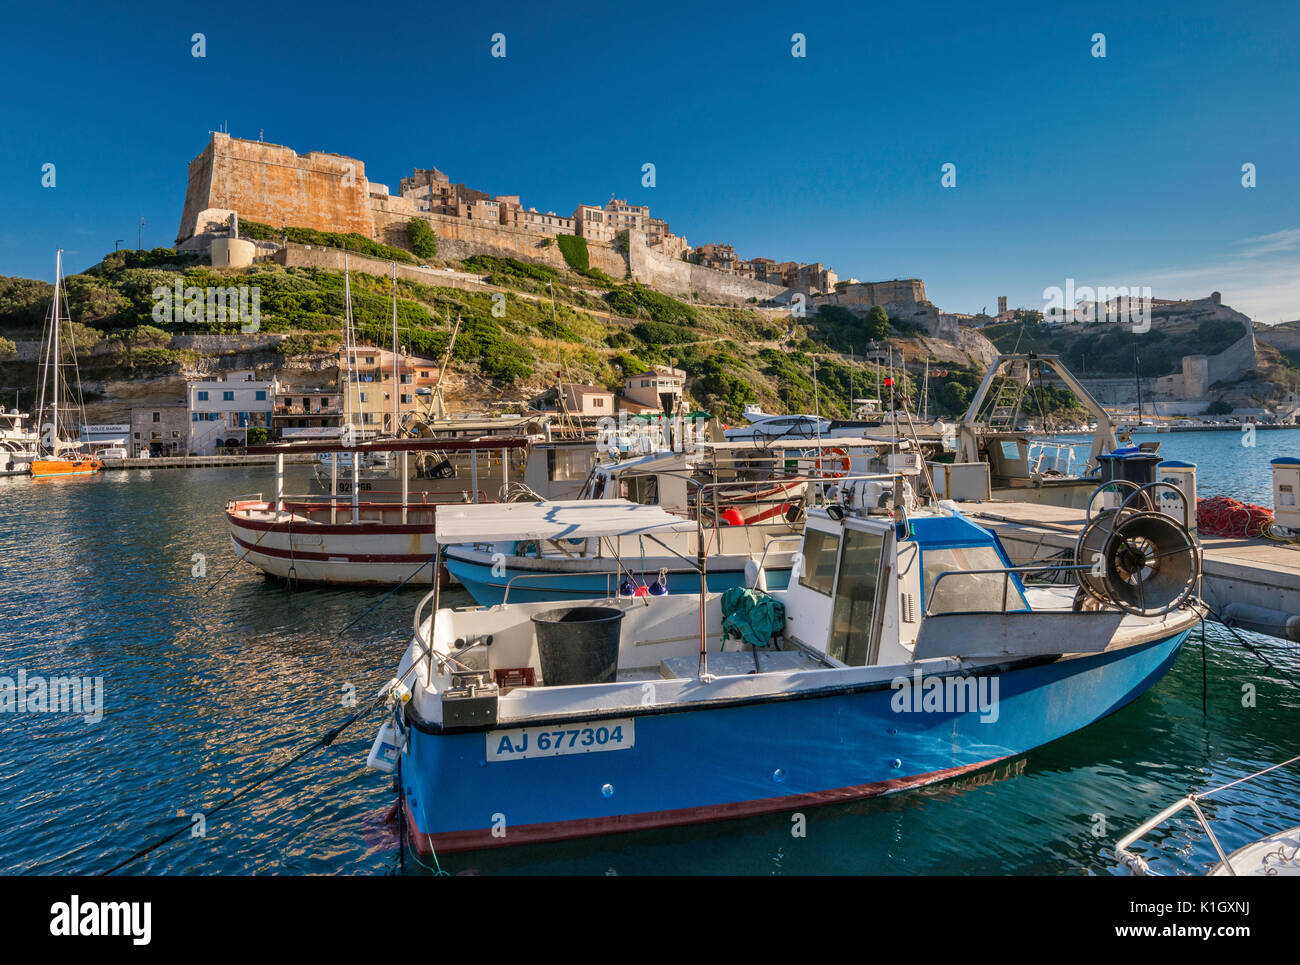 Citadelle, boats at marina at port, at sunset in Bonifacio, Corse-du-Sud, Corsica, France - Stock Image